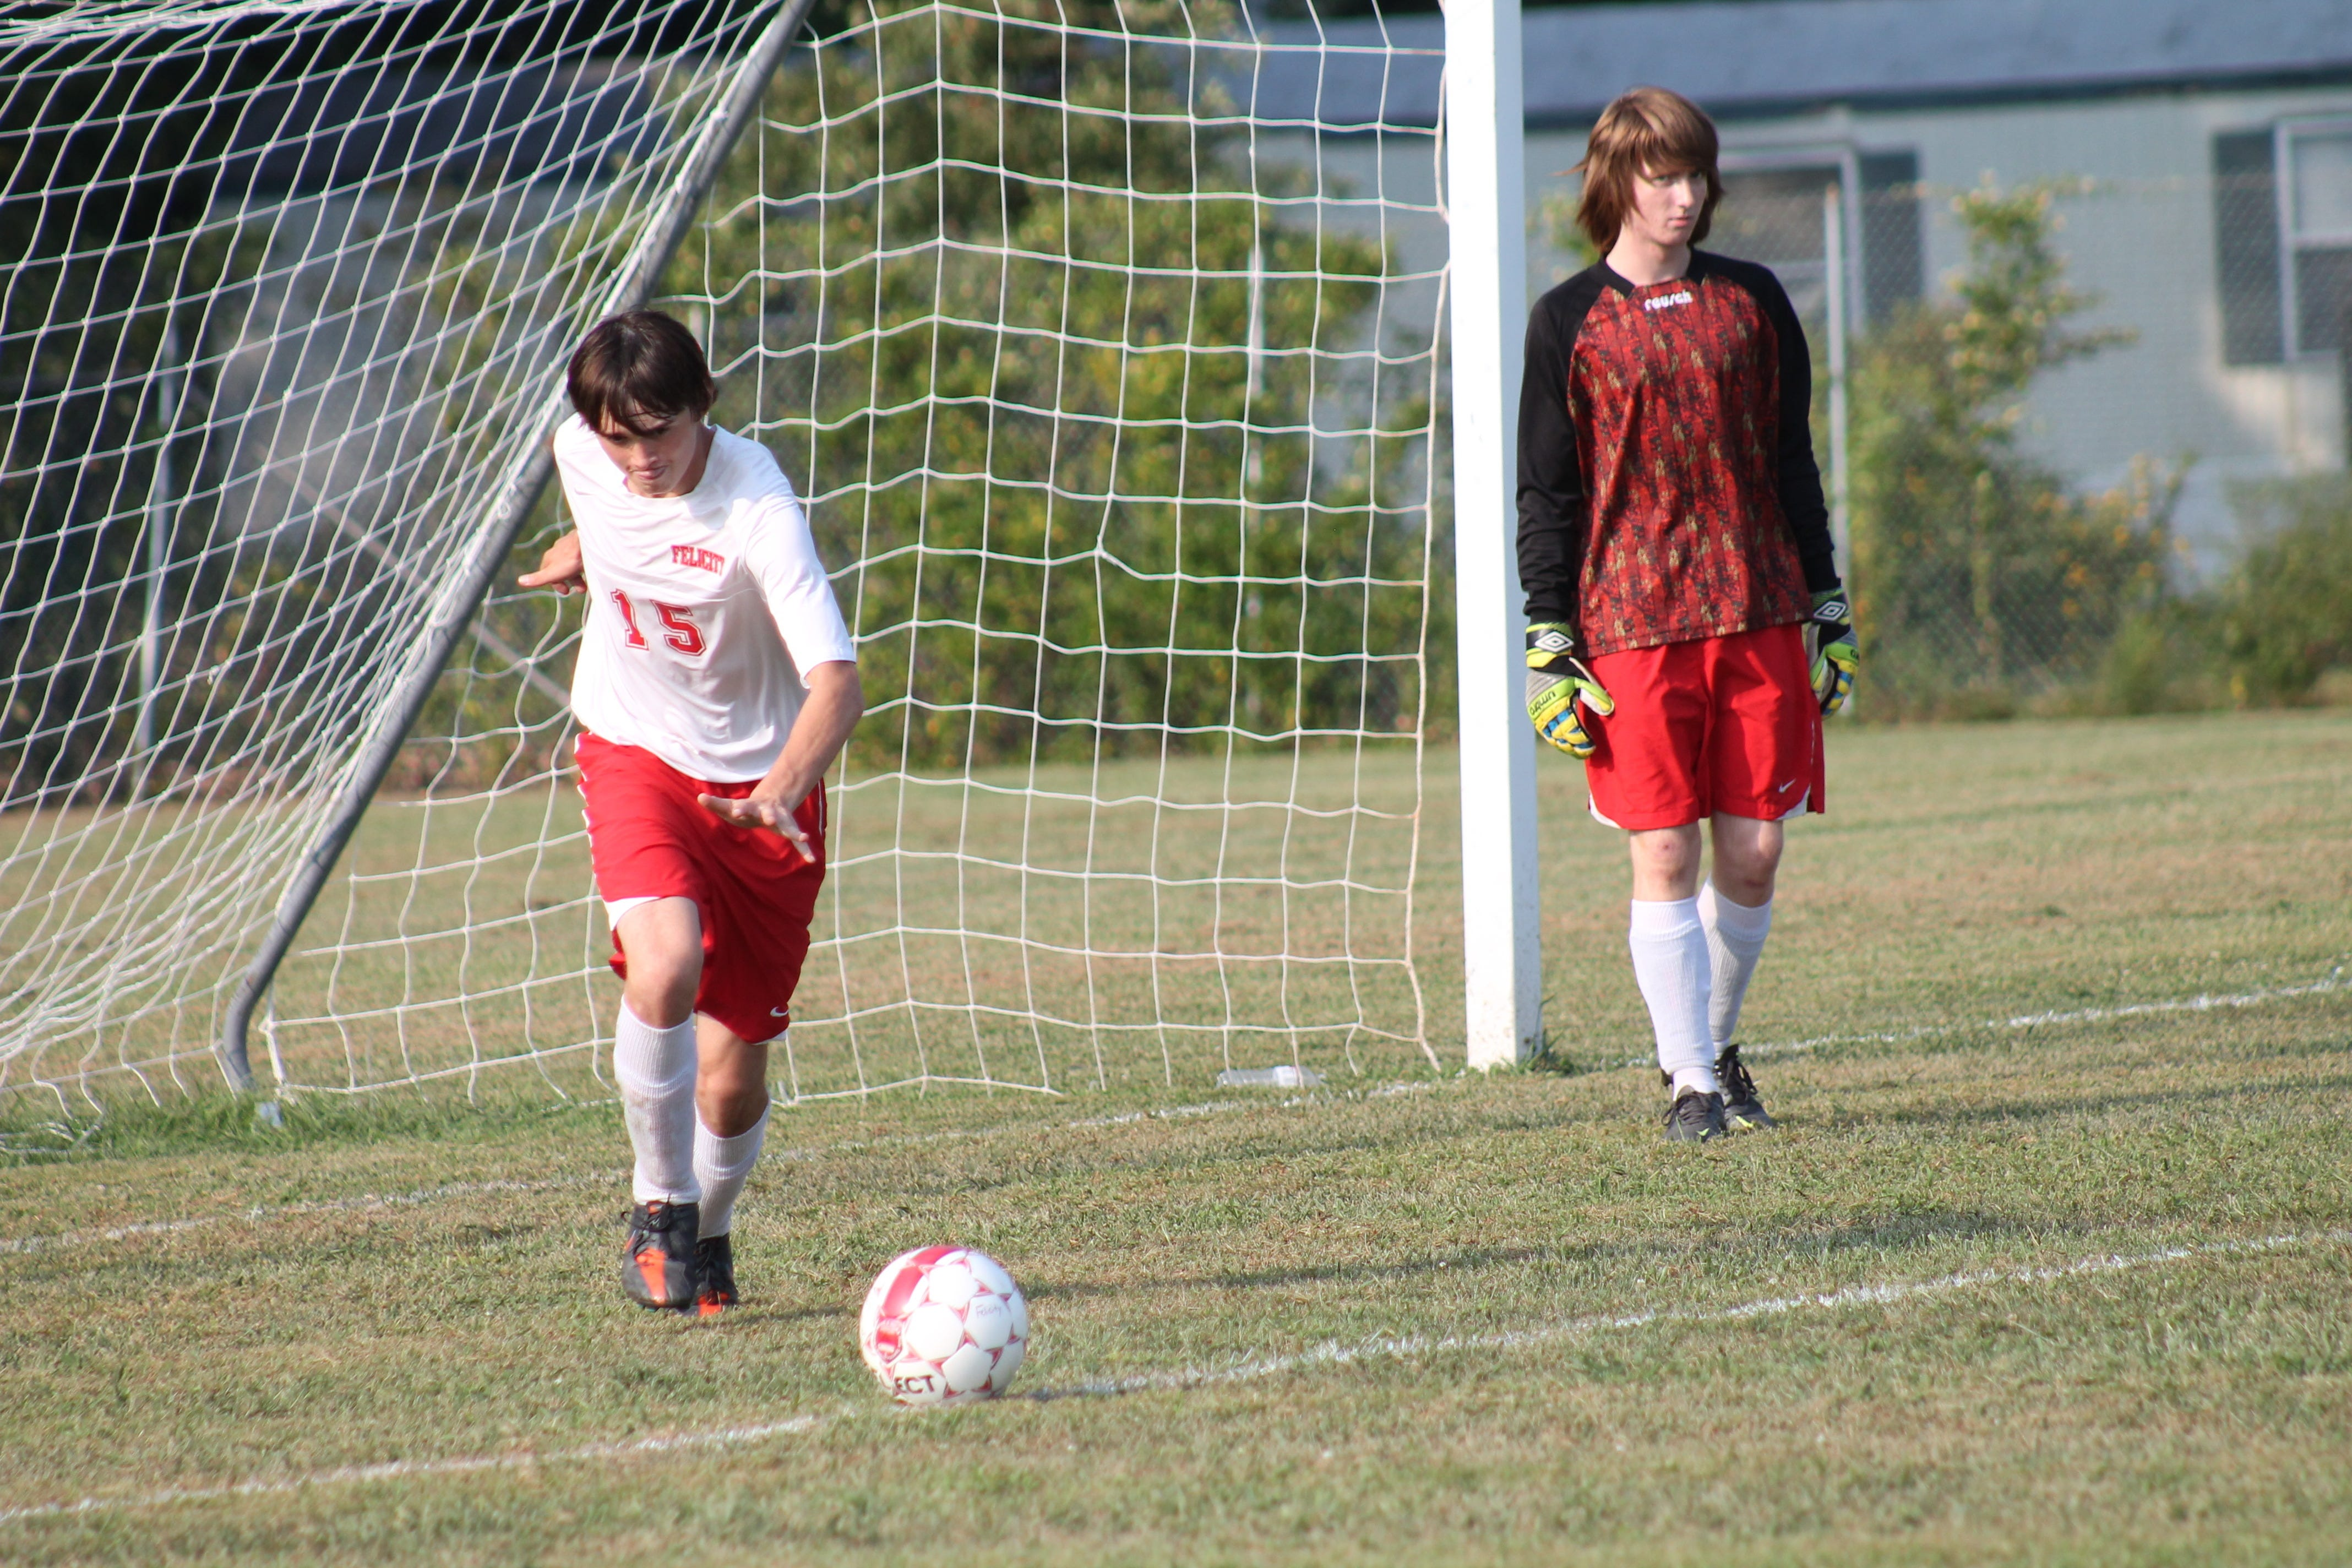 Kyle Lauderback takes the goal kick for Felicity-Franklin against Amelia last September as keeper Jared Tackett stands to the right.